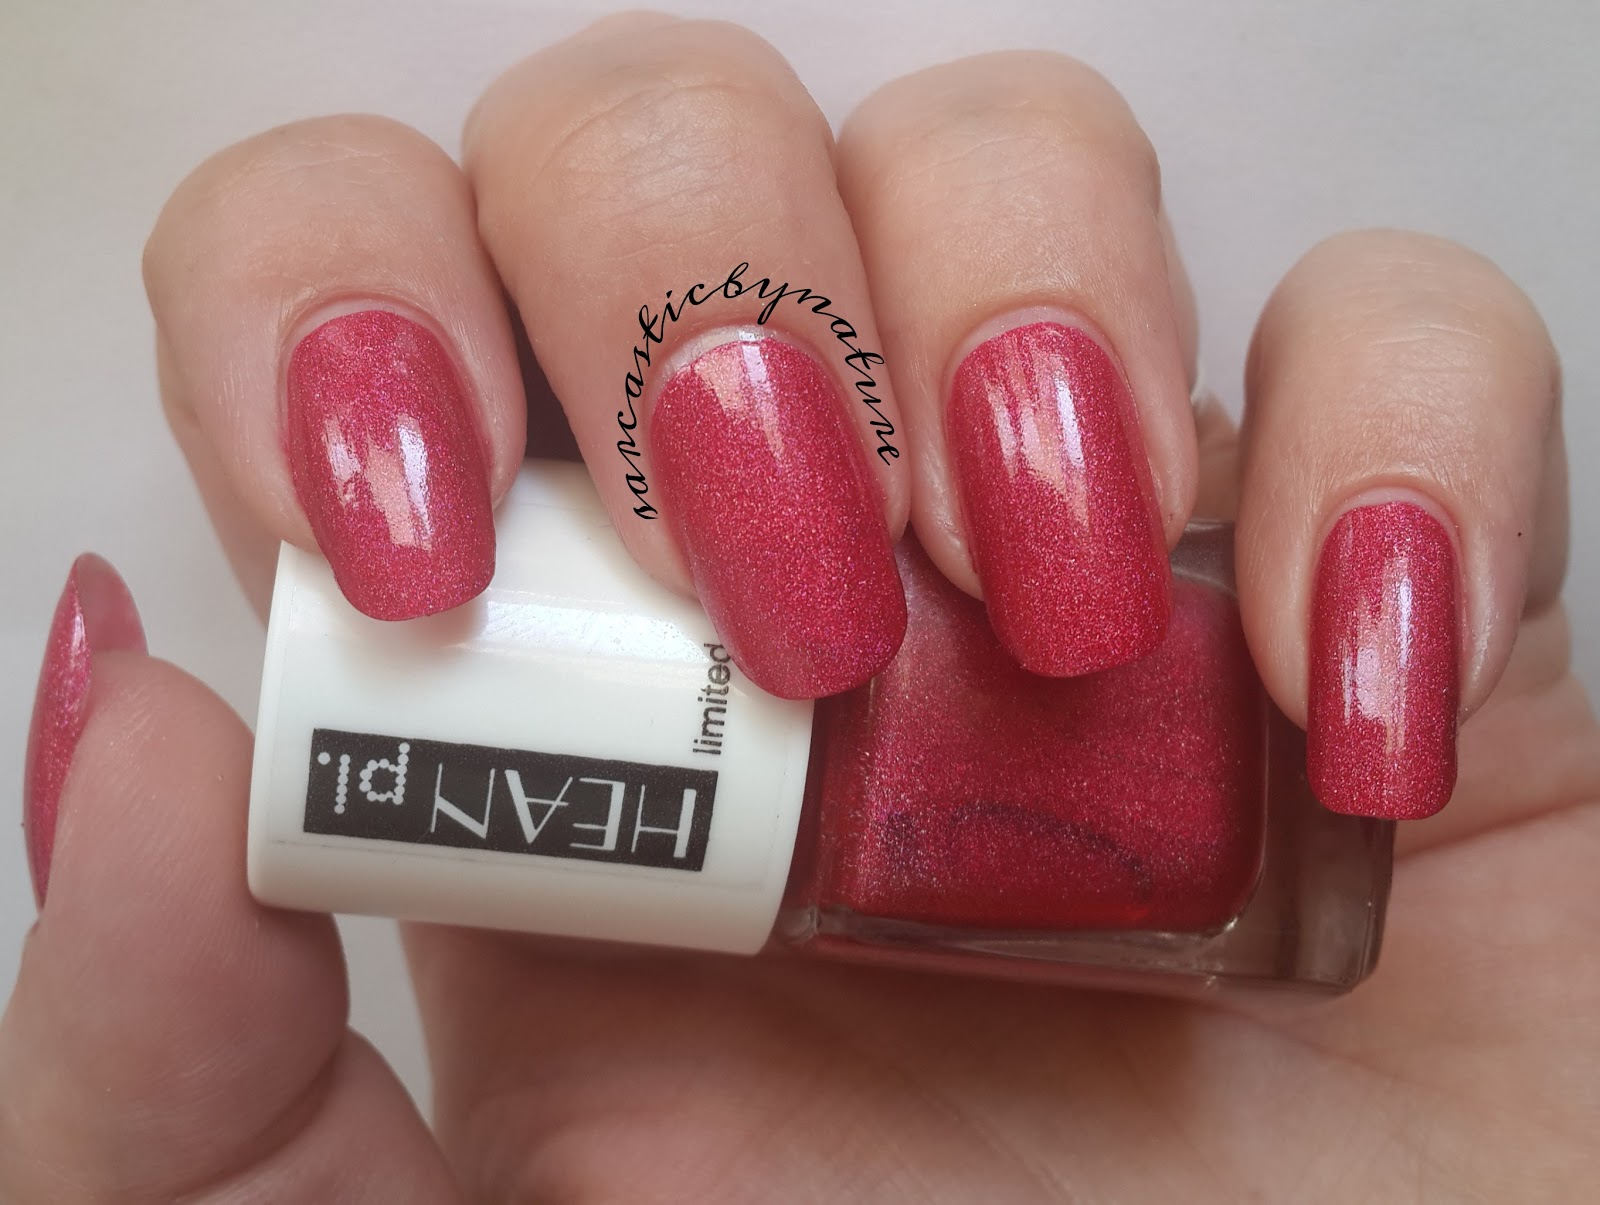 Sarcastic By Nature: Hean nail polish #274 - Jungle Pop Collection